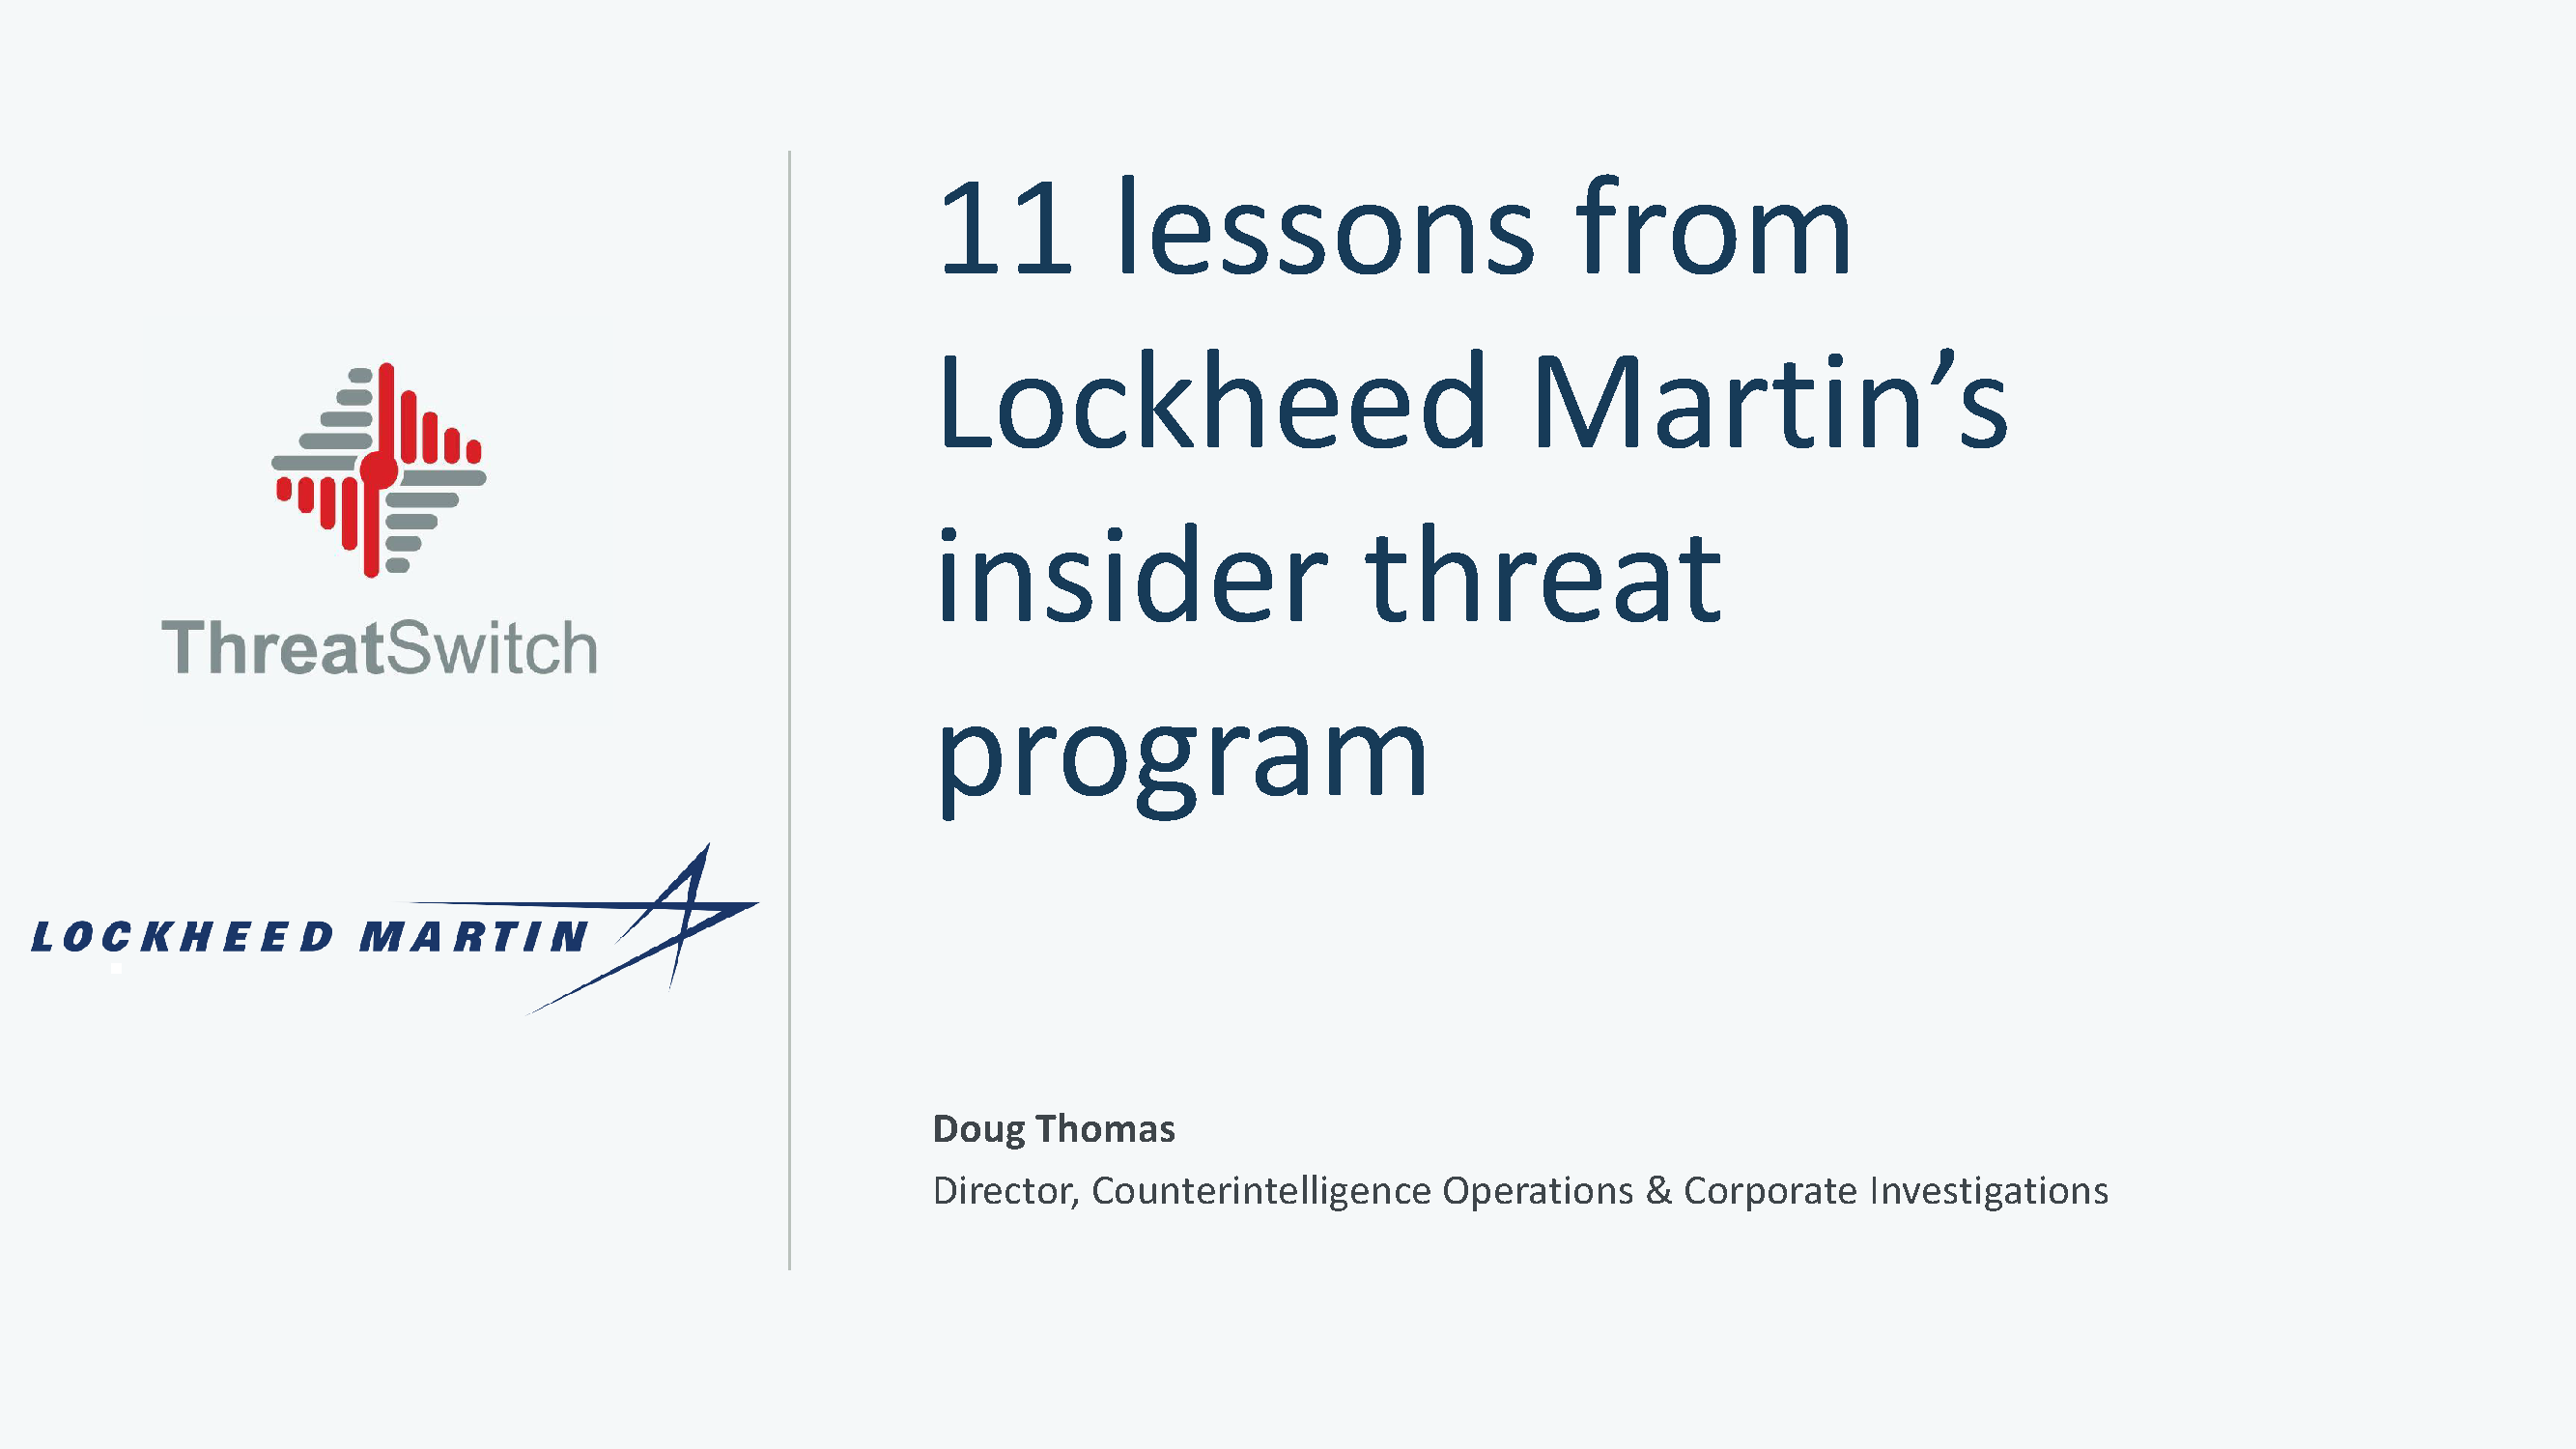 11 Lessons from Lockheed's Insider Threat Program